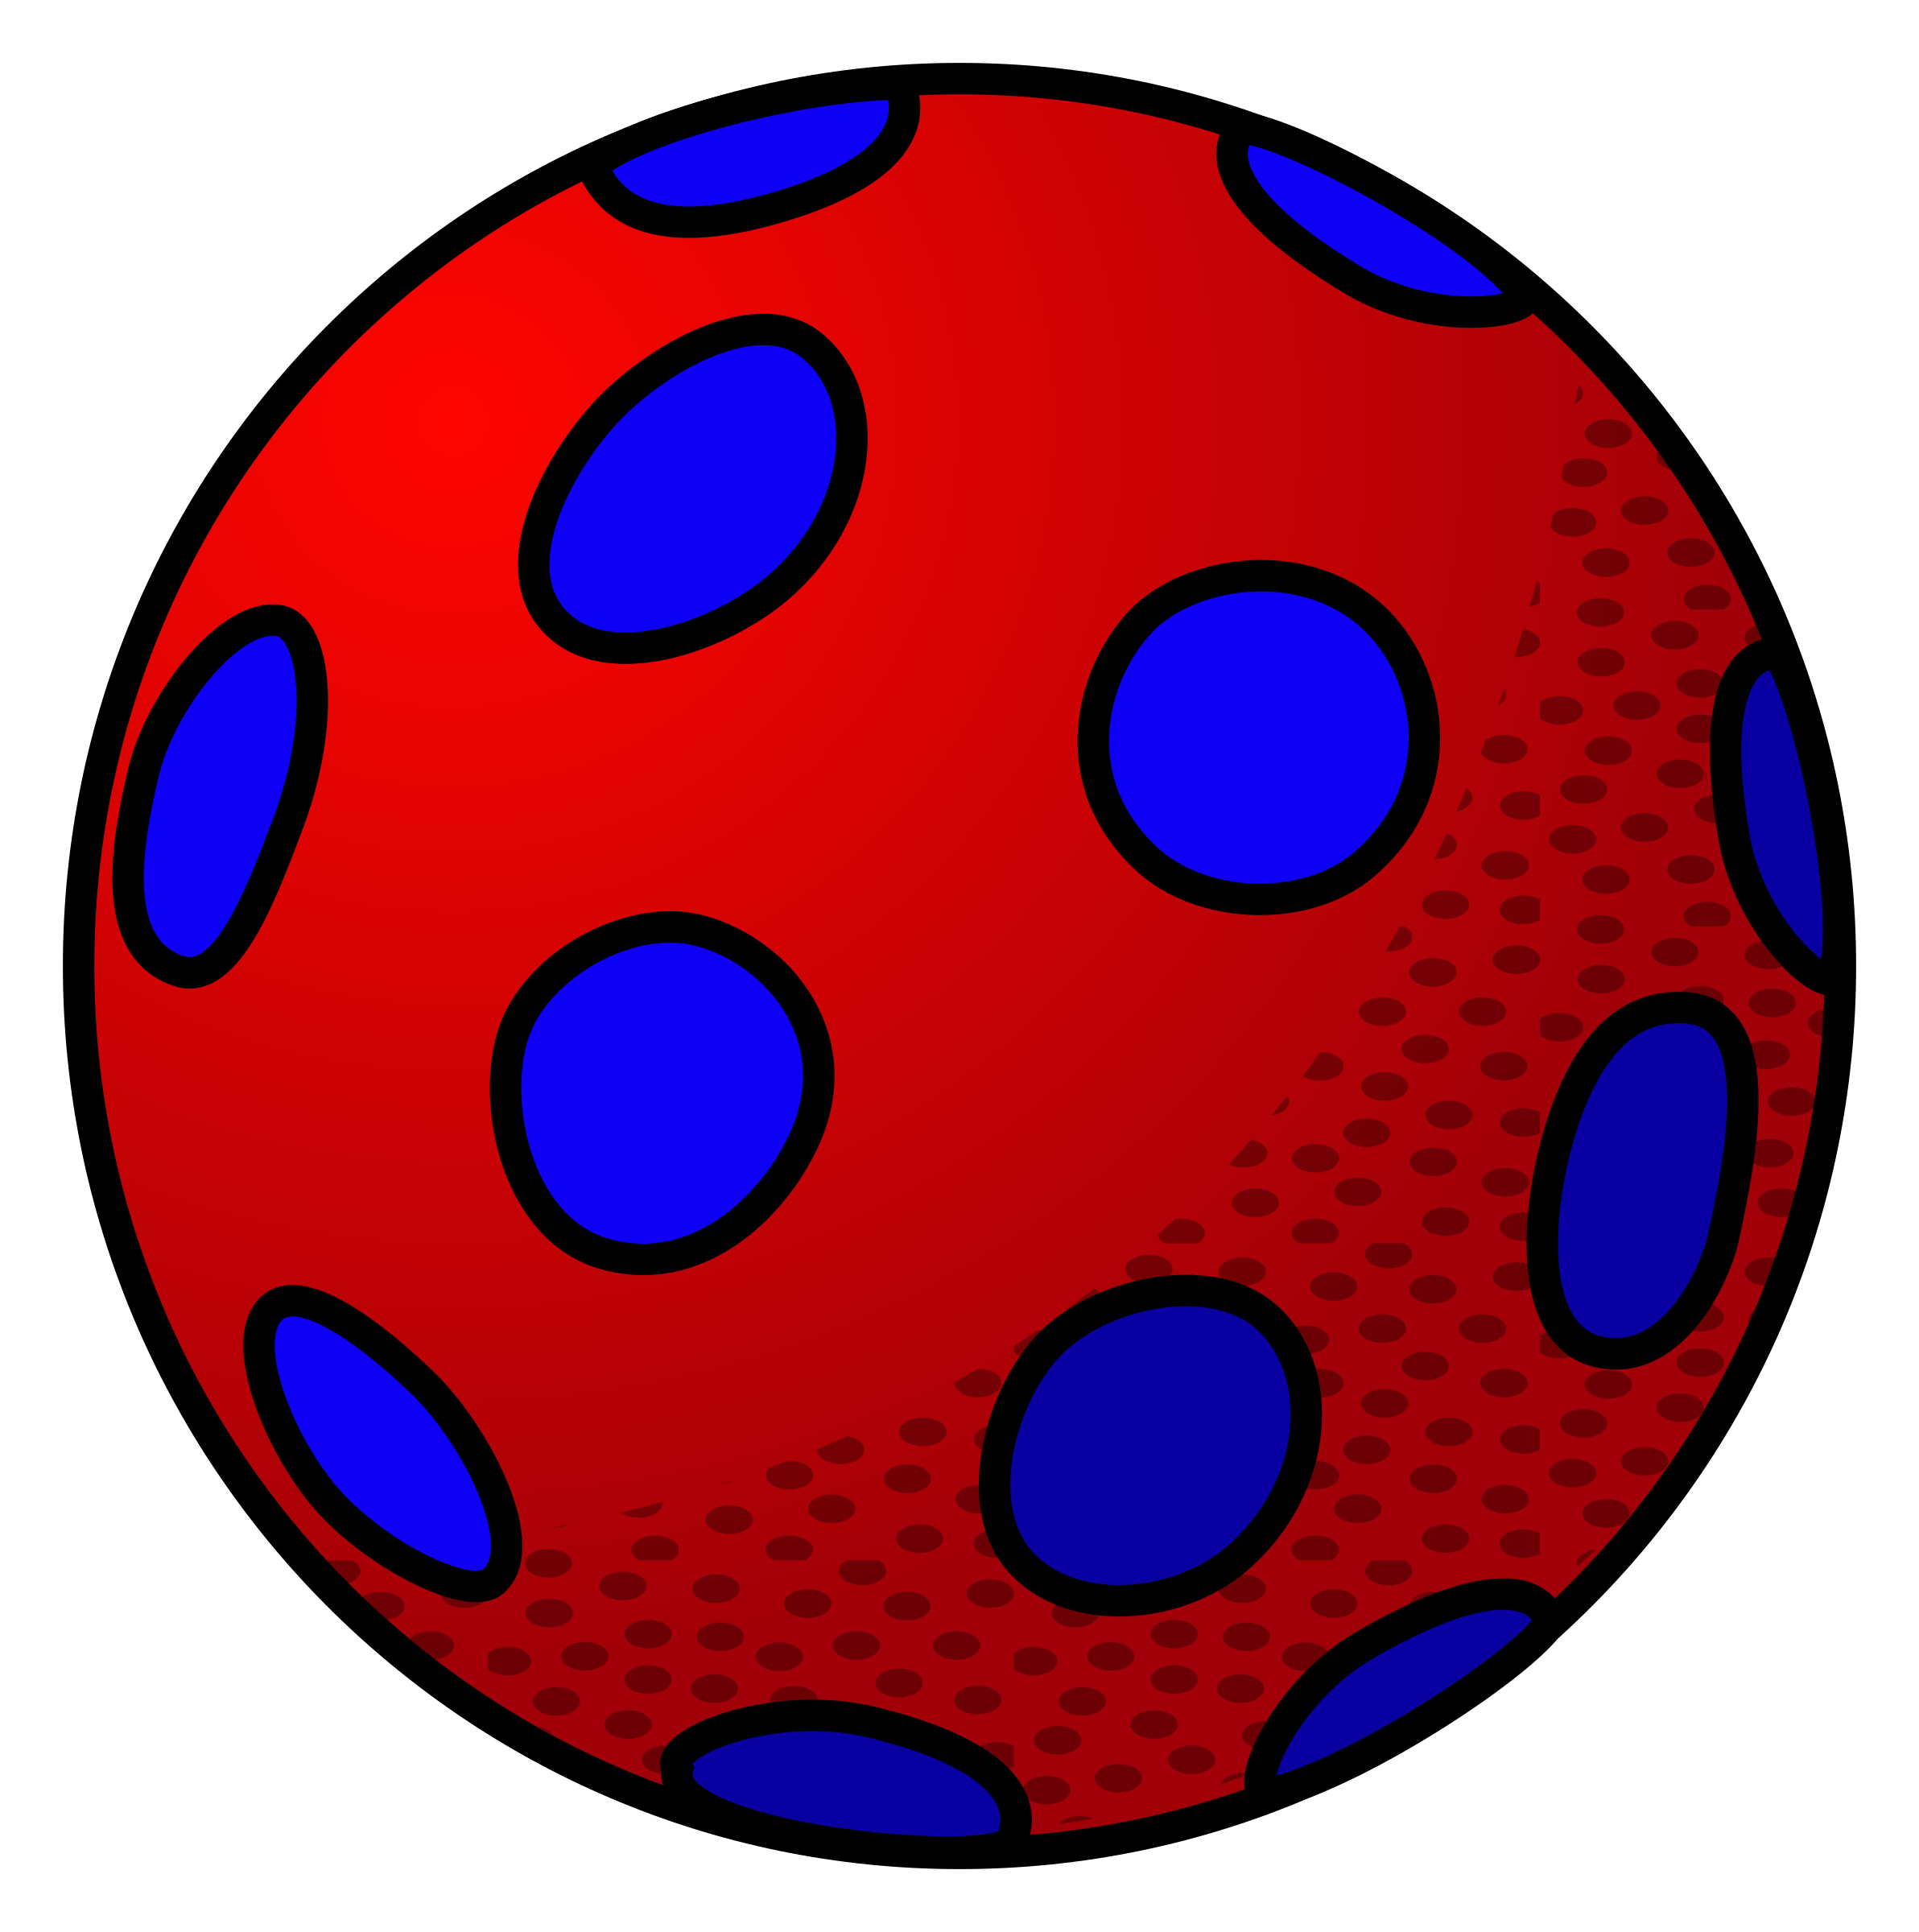 Ball clipart colored. Coloured big image png